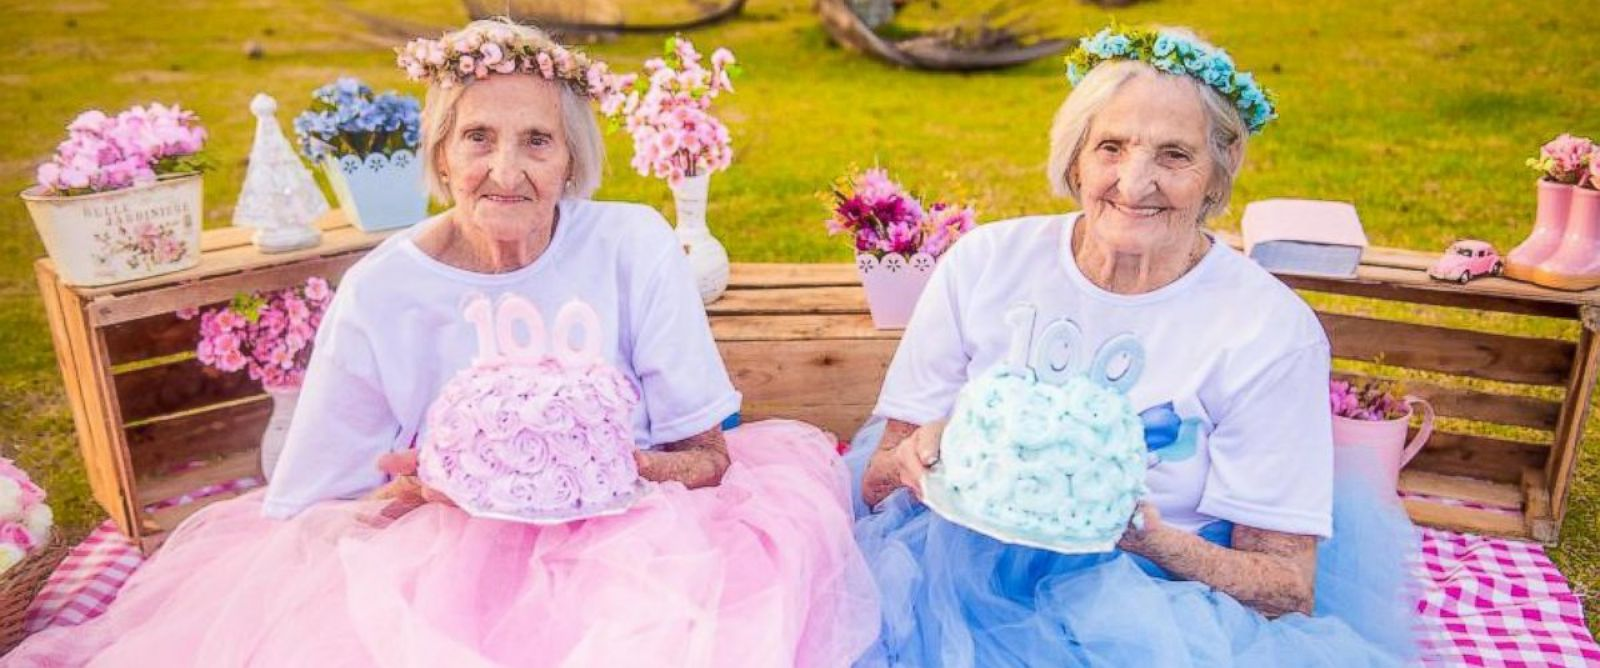 PHOTO:Brazilian twin sisters Maria Pignaton Pontin and Paulina Pignaton Pandolfi celebrated turning 100 on May 24 with a whimsical photo shoot.